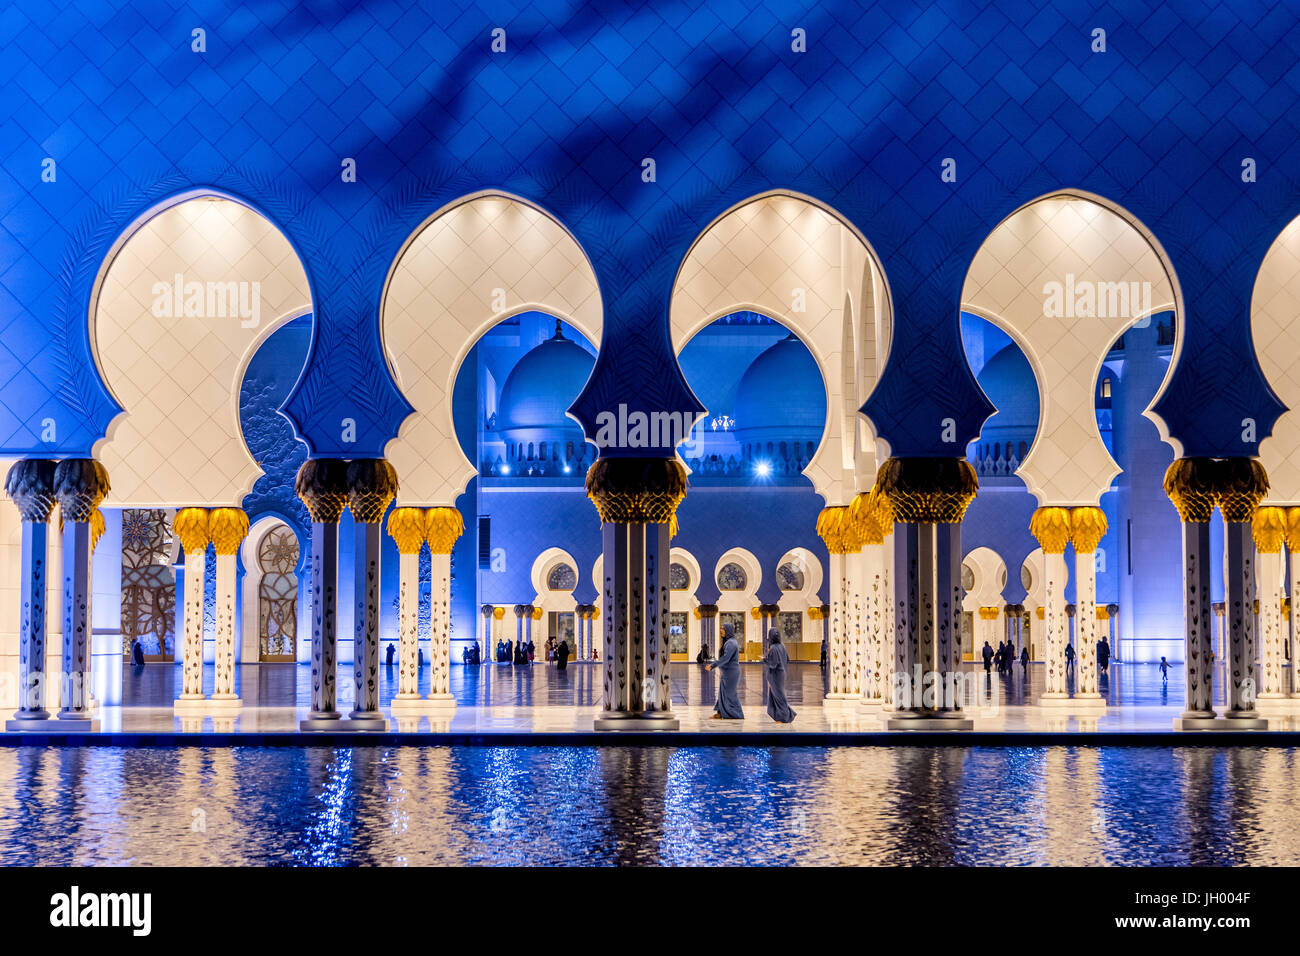 Emirati woman taking a selfie at the Sheikh Zayed Grand Mosque in Abu Dhabi, UAE Stock Photo